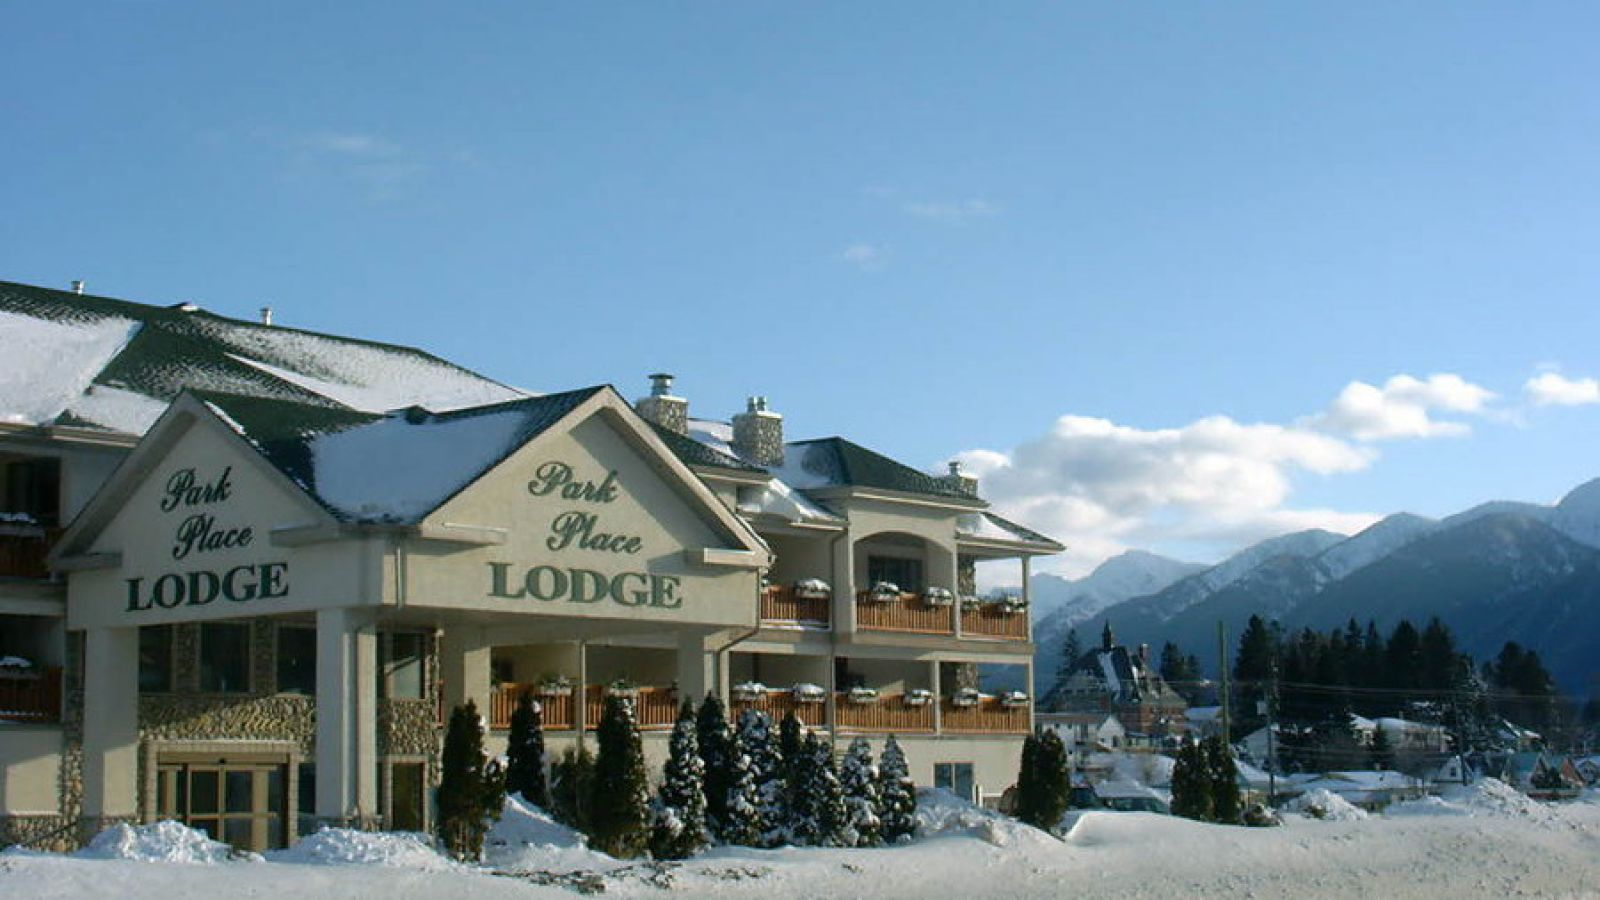 Welcome to the Park Place Lodge.